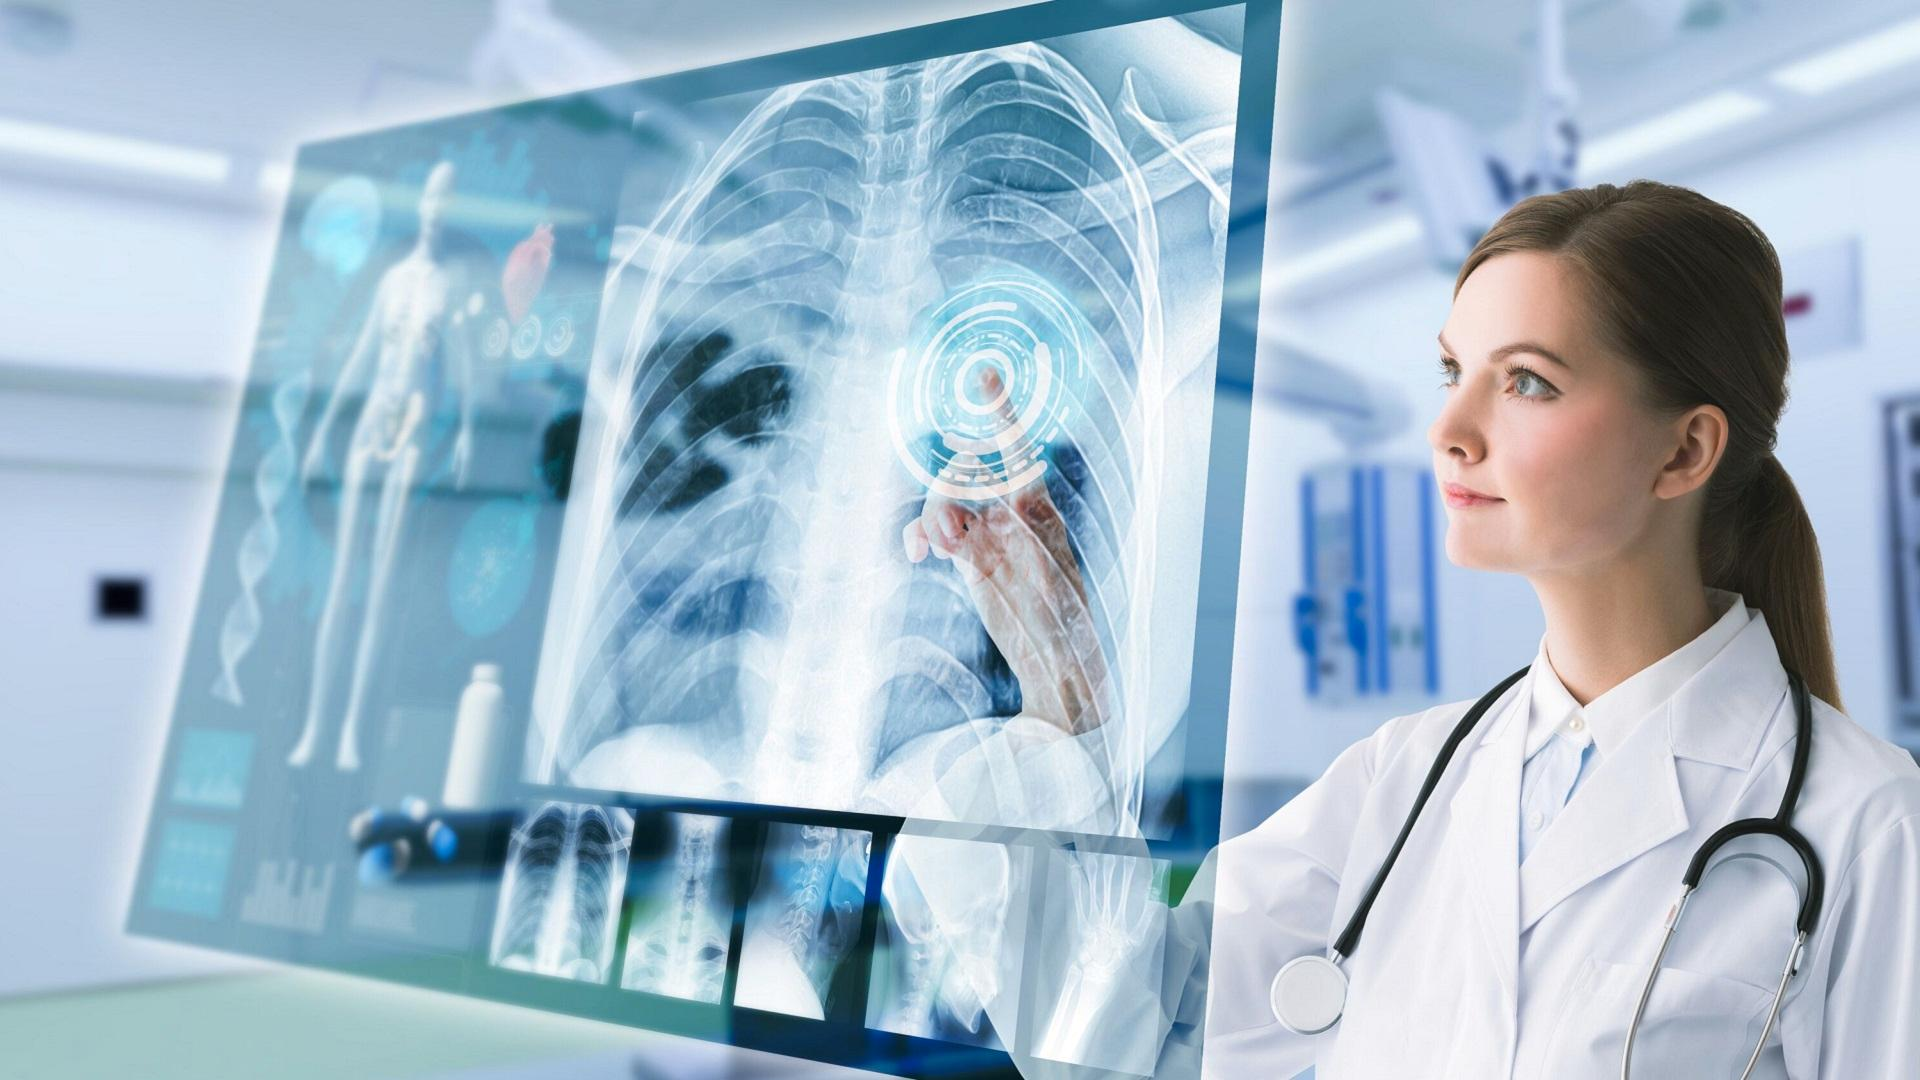 futuristic situation of a doctor in front of a chest scan, radiology, ai-assisted diagnosis